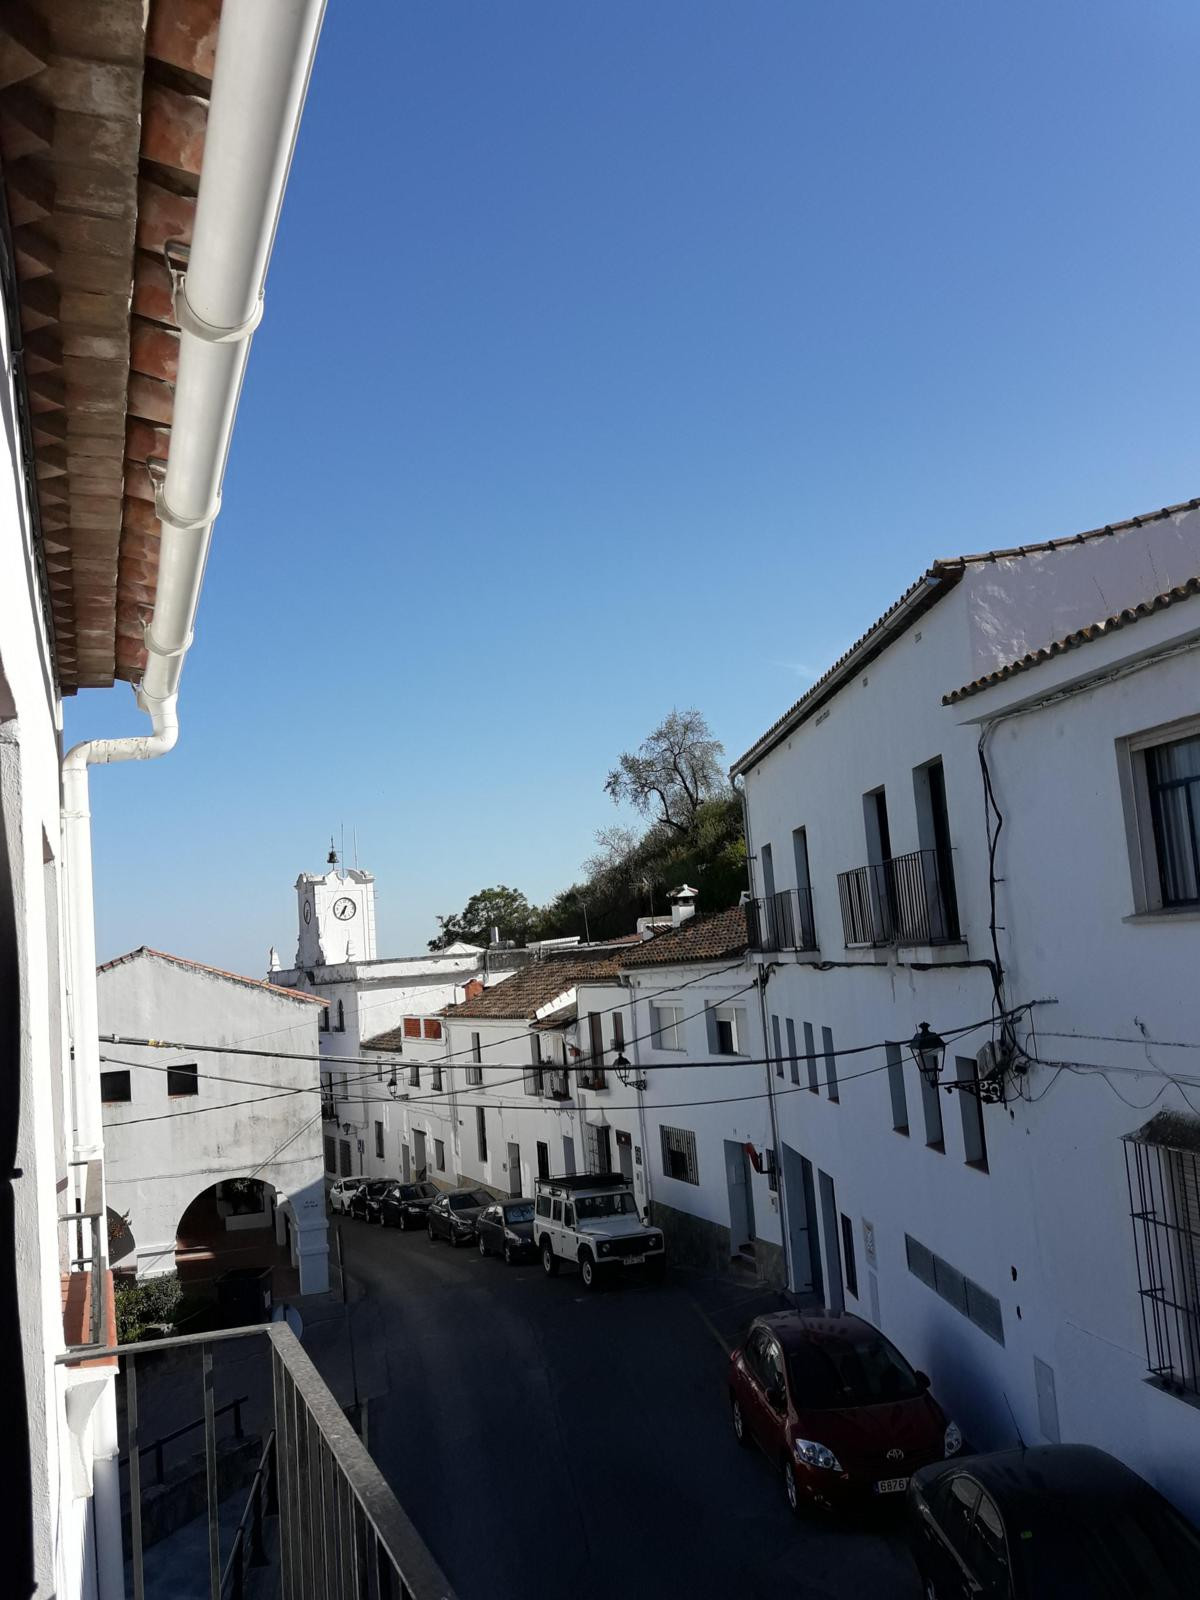 Located in the village of Jimena where history and nature go hand in hand at the foot of the Natural,Spain